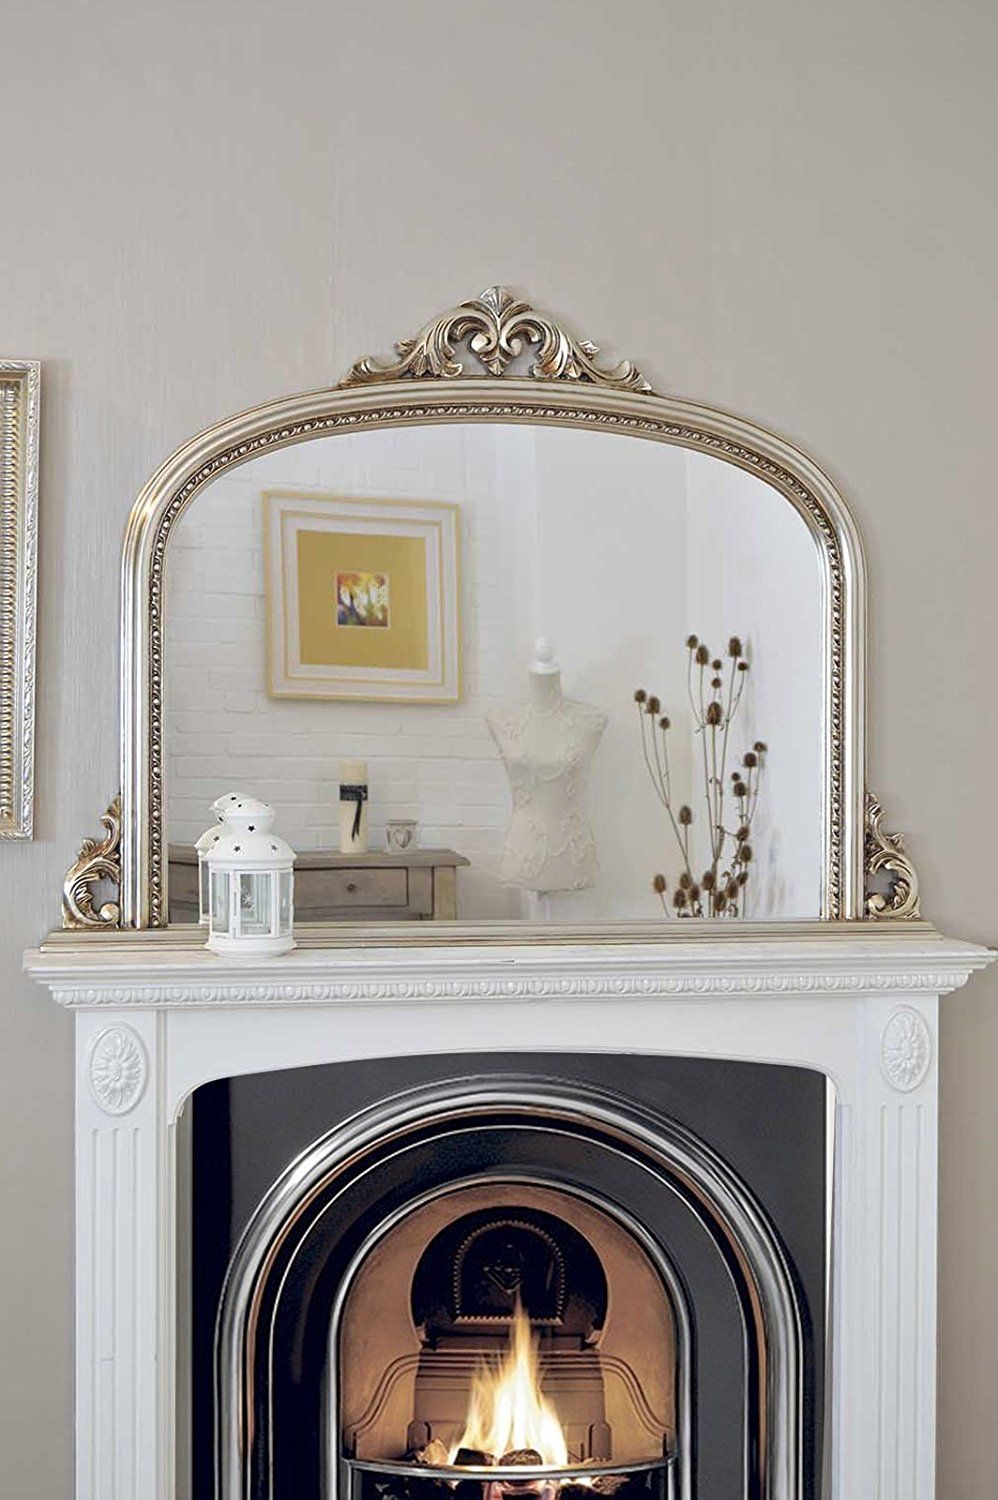 Classic French Inspired Silver Overmantle Mirror With Elegant Ornate Frame Complete Premium Quality Pilkingtons Glass